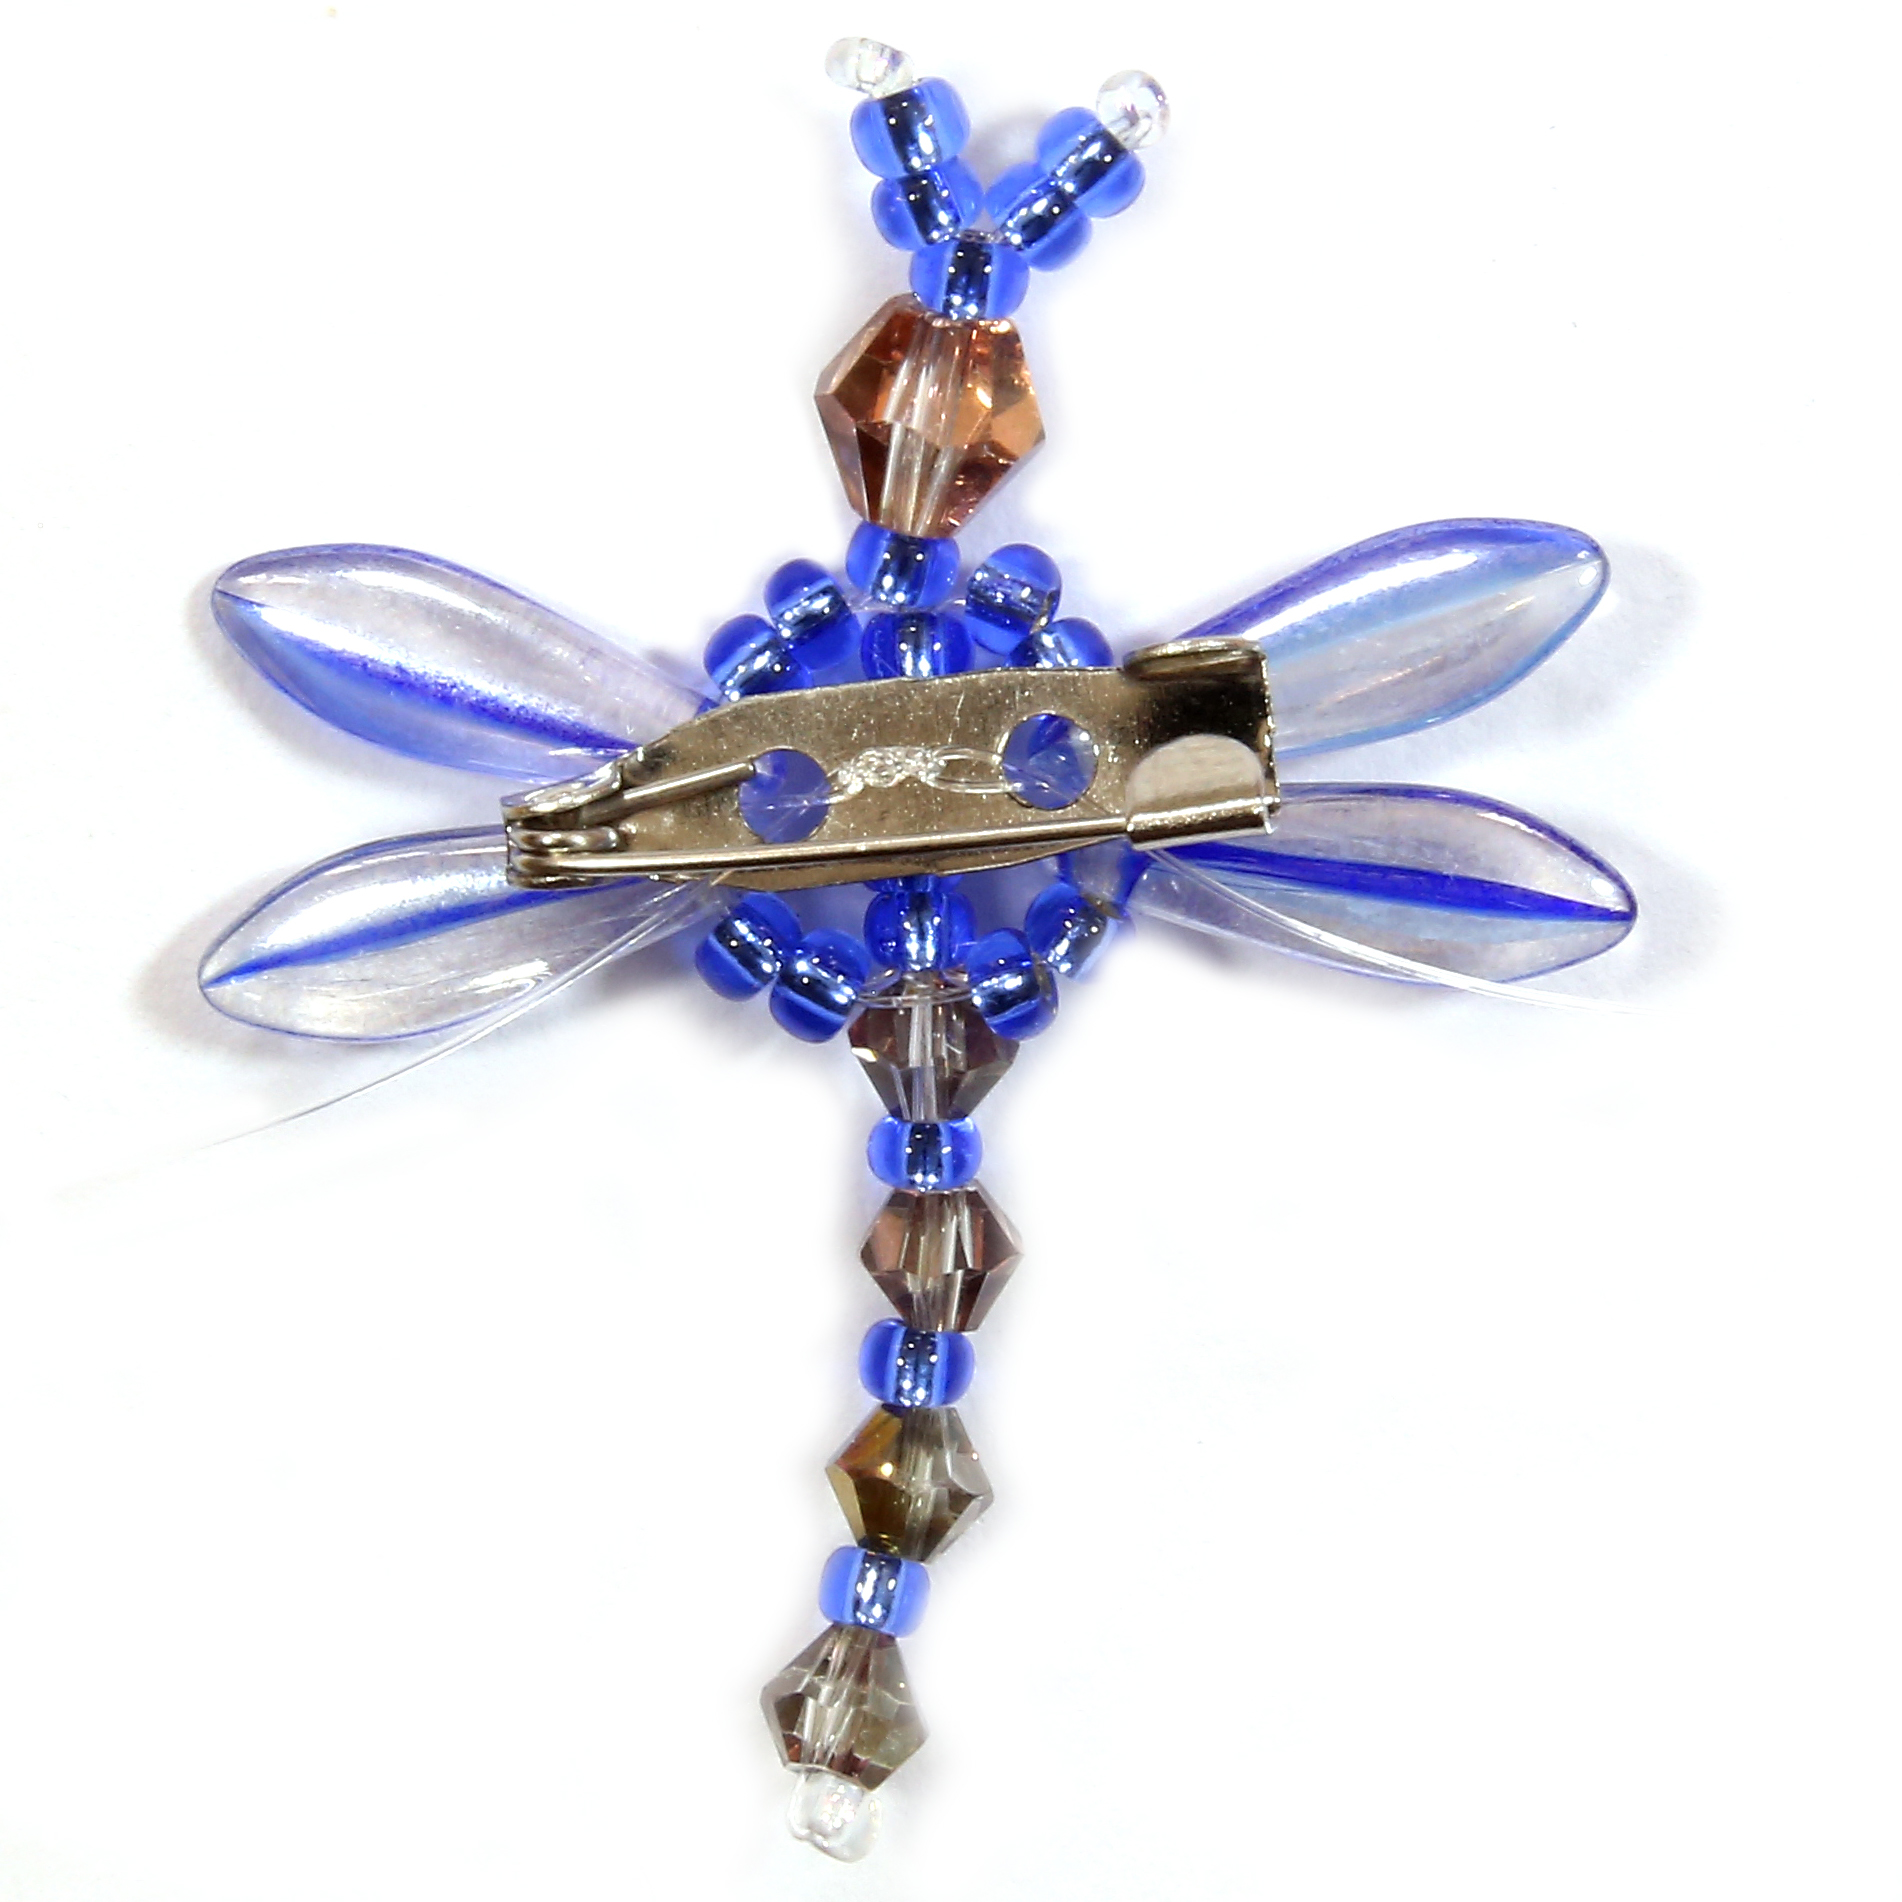 D&DstpDfly Brooch07a